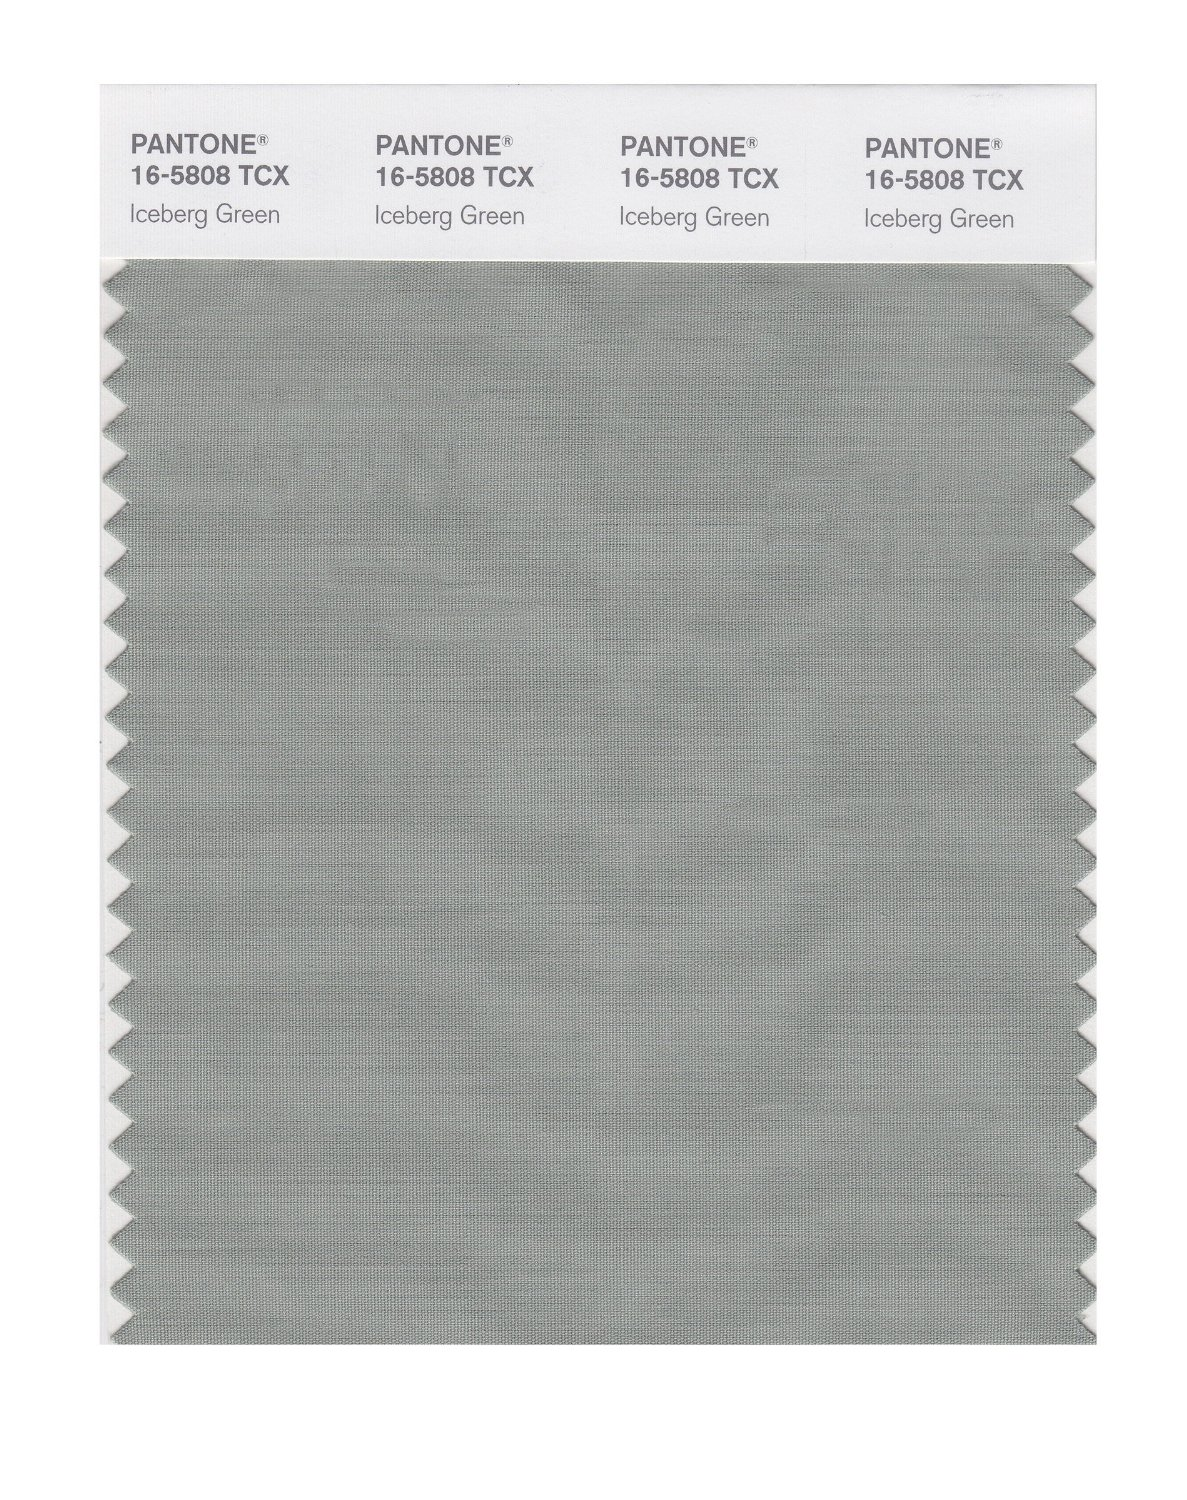 Pantone Smart Swatch 16-5808 Iceberg Green